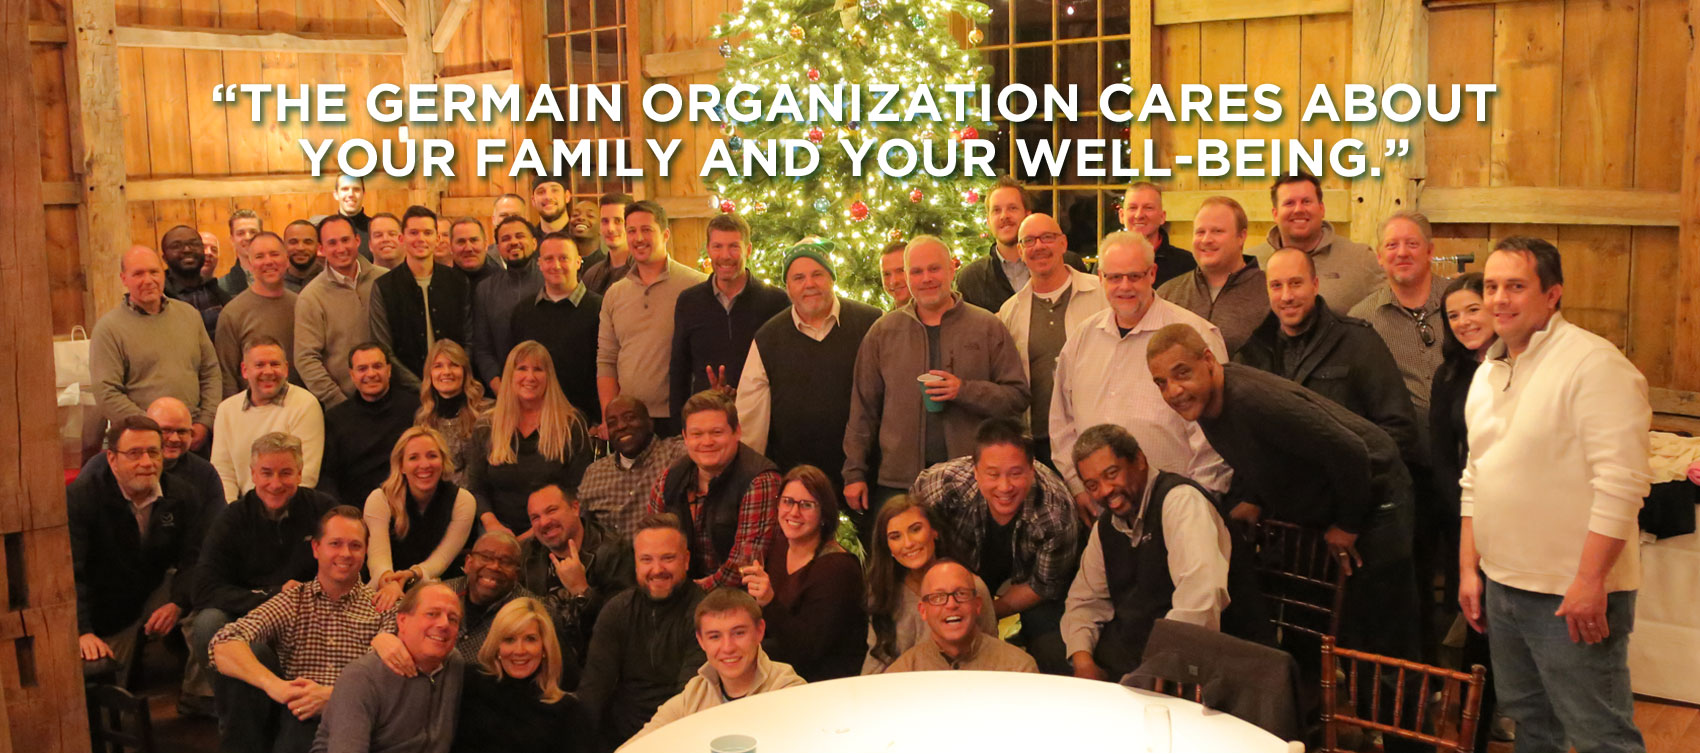 The Germain organization cares about your family and your well-being.